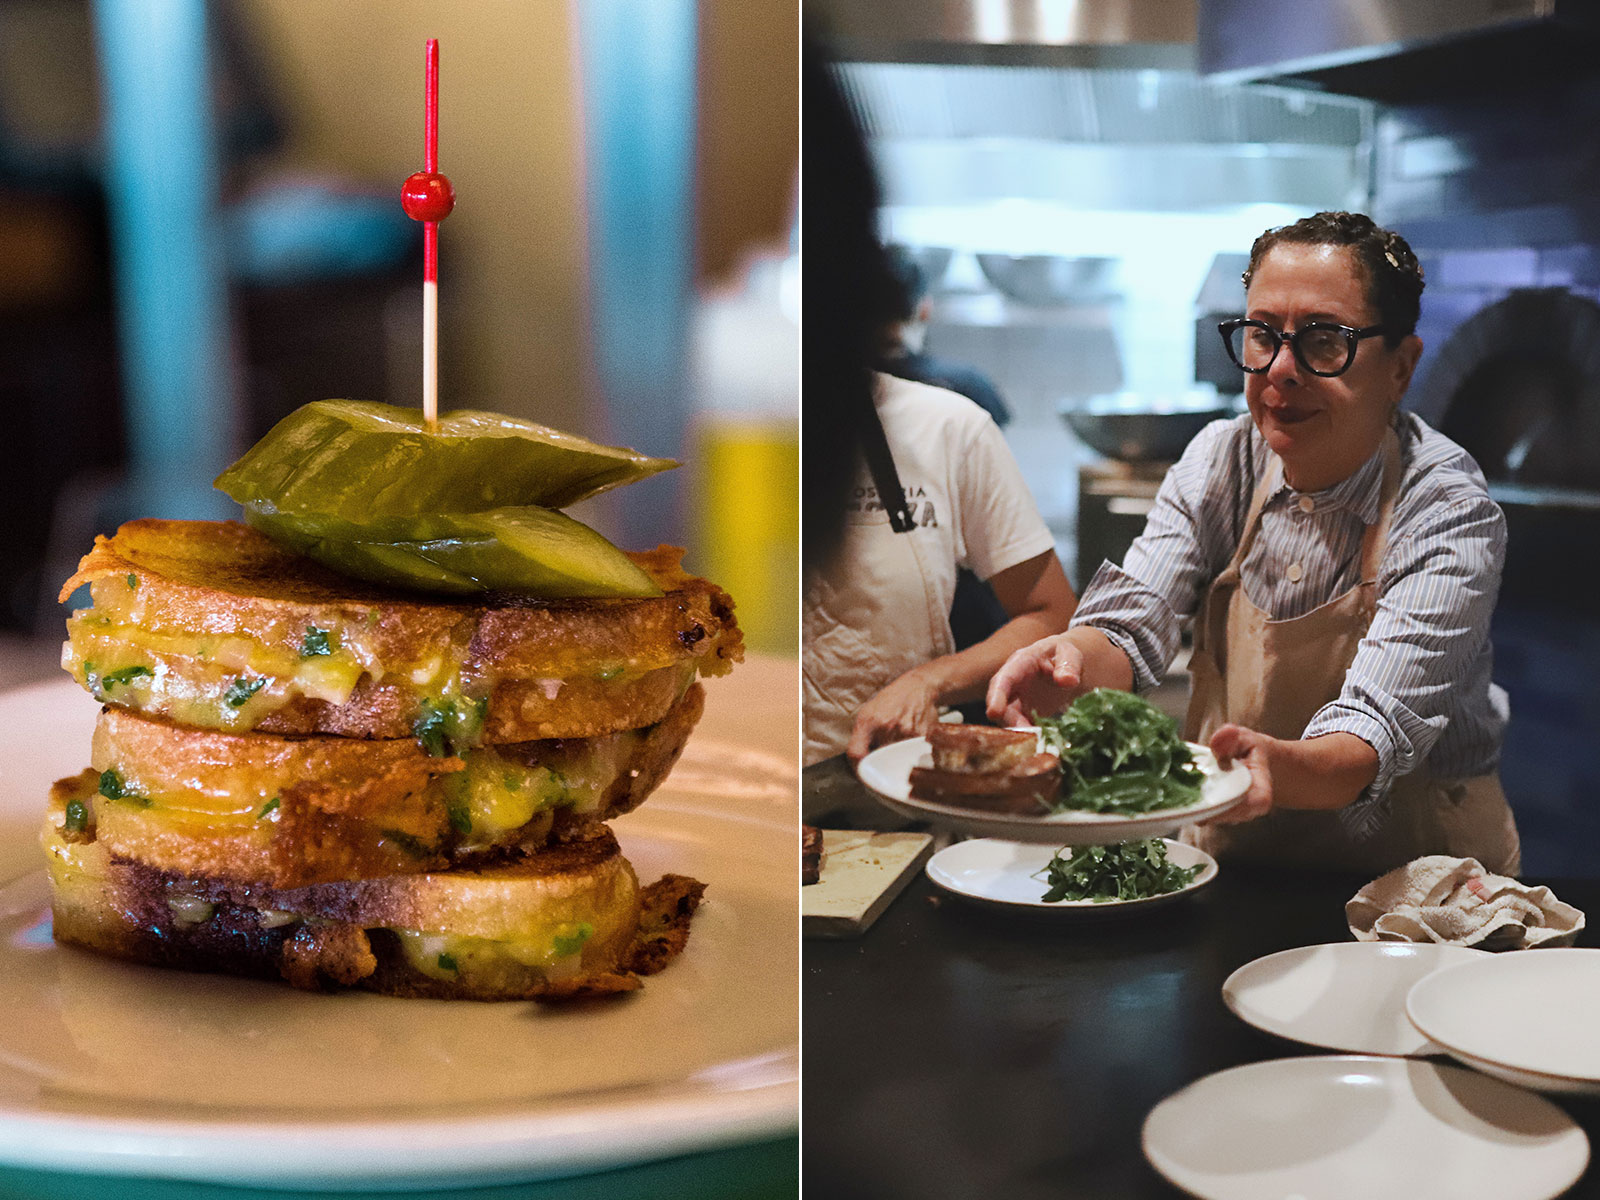 Nancy Silverton's Famous Grilled Cheese Returns to L.A. with a Bang